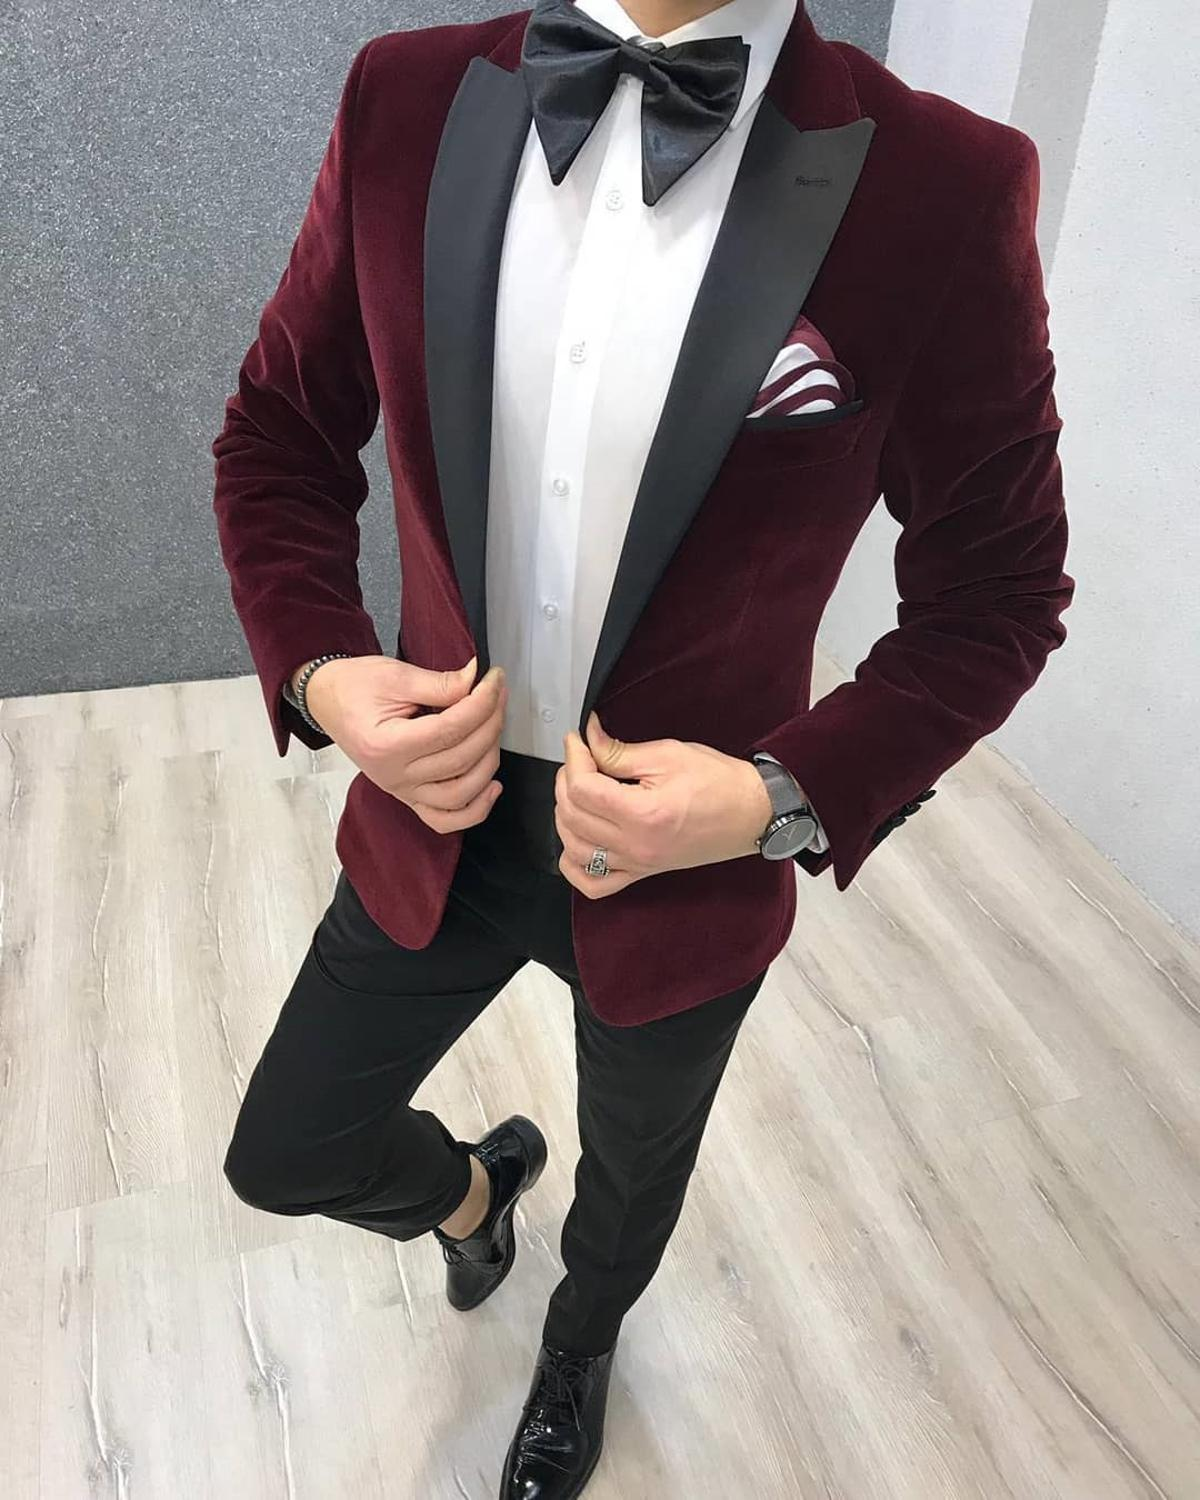 Solovedress Velvet Blazer Jacket Peak Lapel Button Fly Mens Prom Suit Two Three Pieces Soft High Quality Fashion Tuxedos Wear